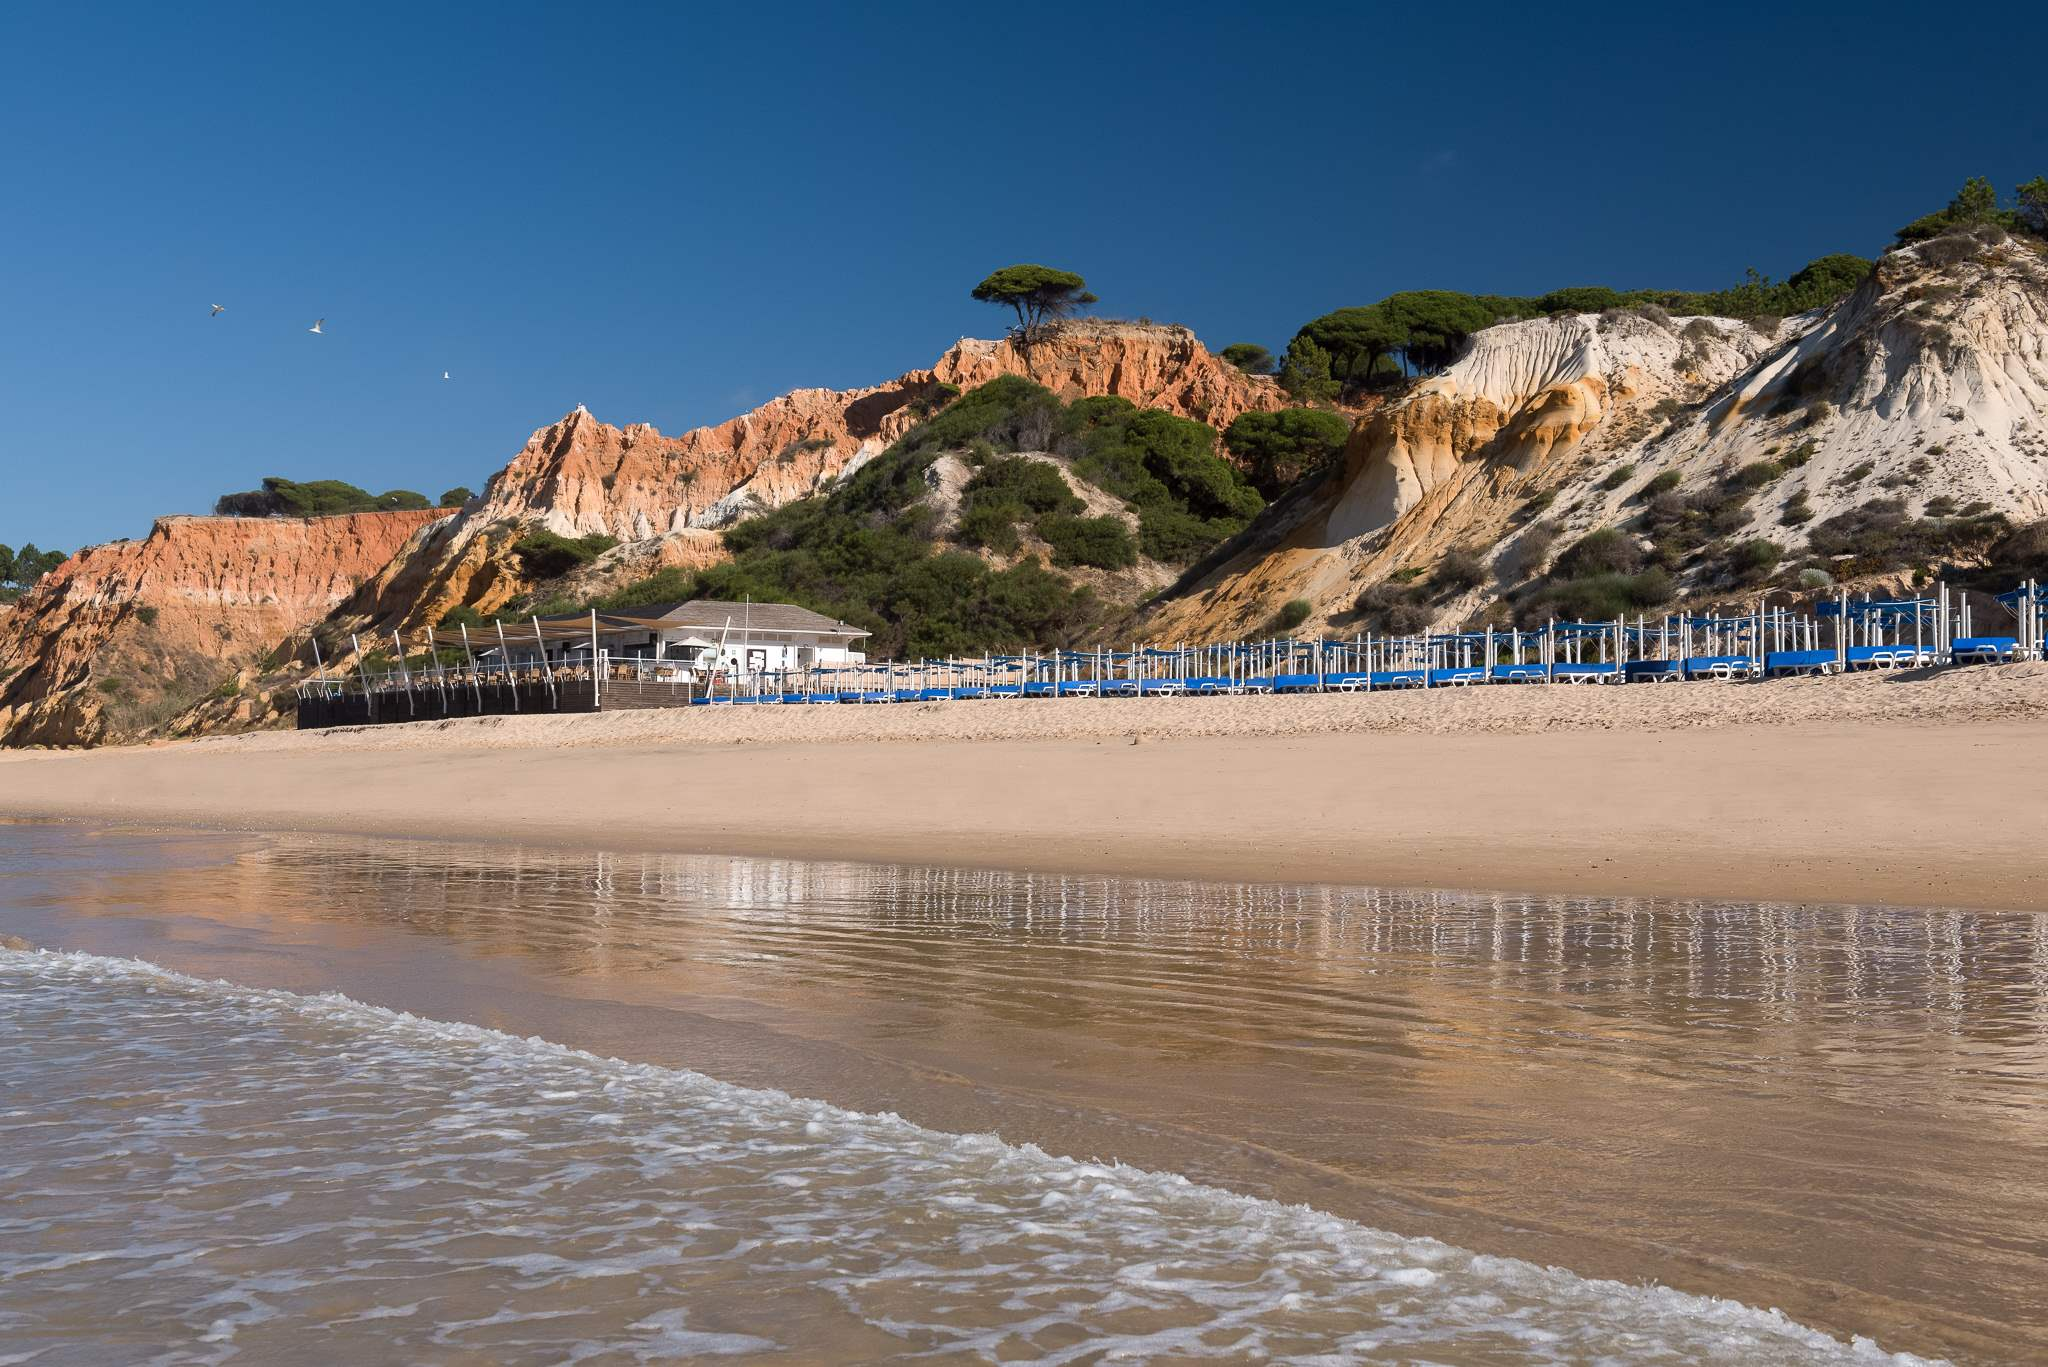 Pine Cliffs Terraces, 4 Bedroom, room only basis, 4 bedroom villa in Pine Cliffs Resort, Algarve Photo #27